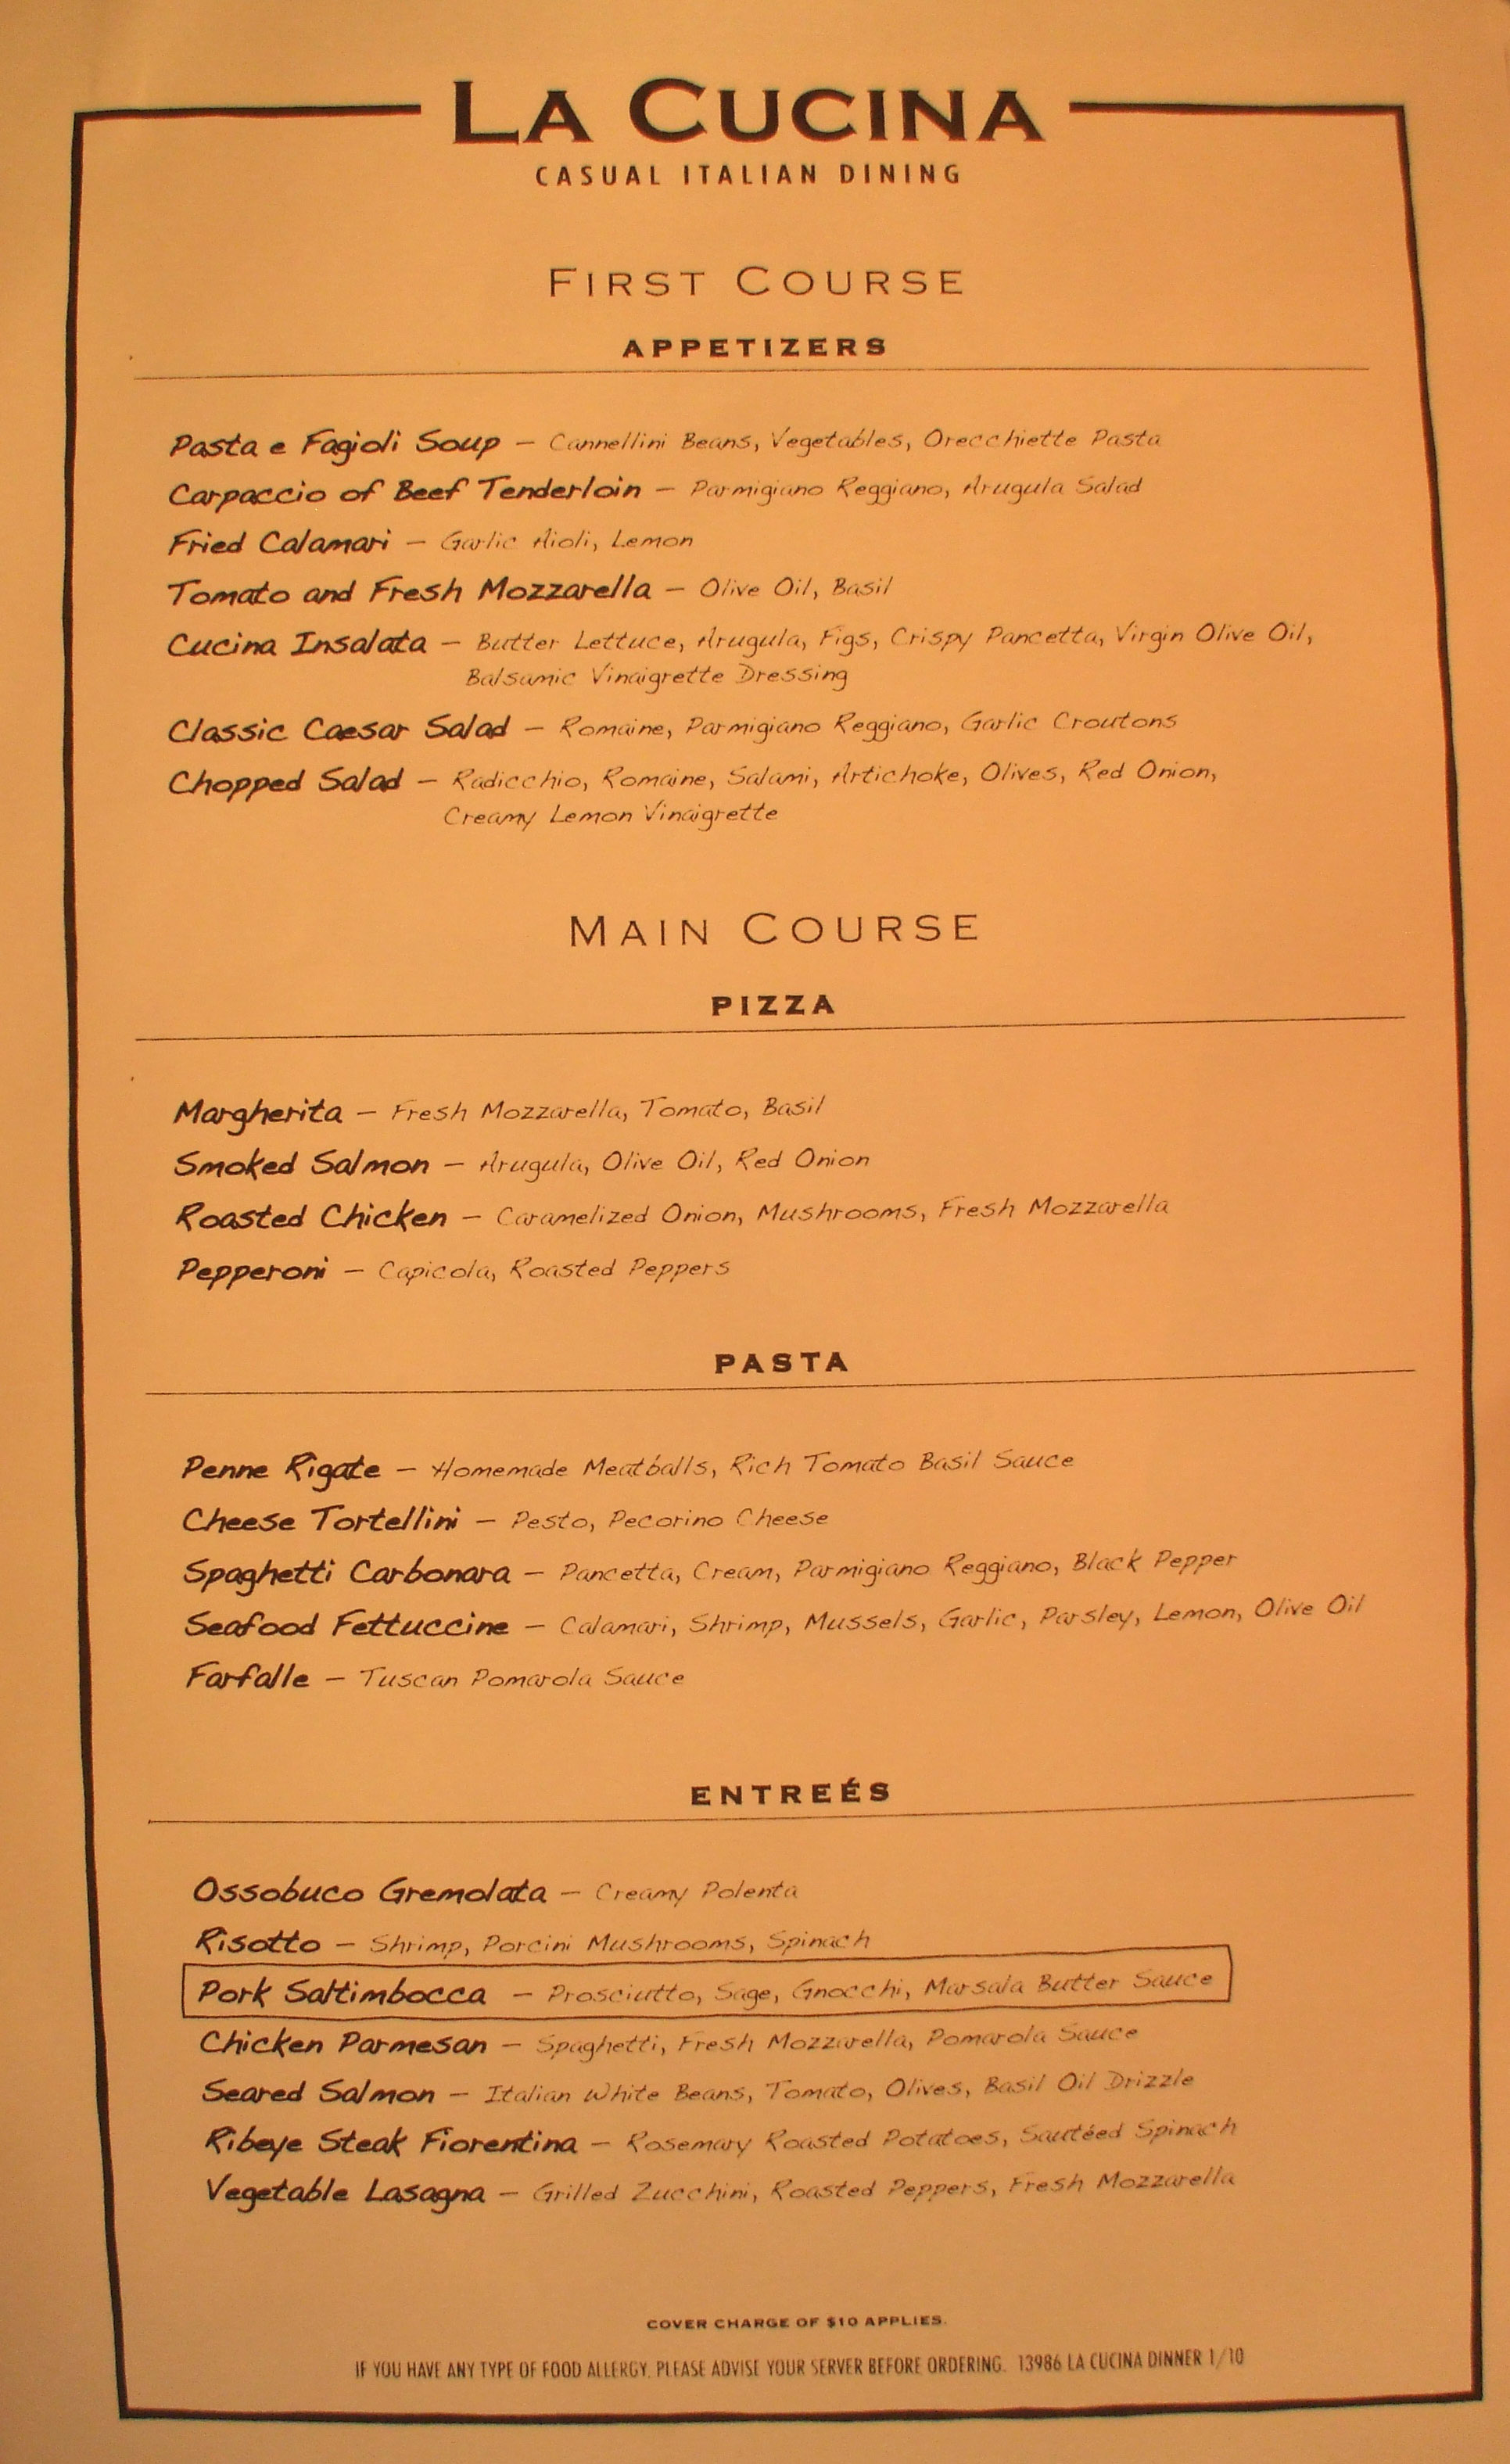 norwegian pearl - menu - la cucina - Cucina On Line